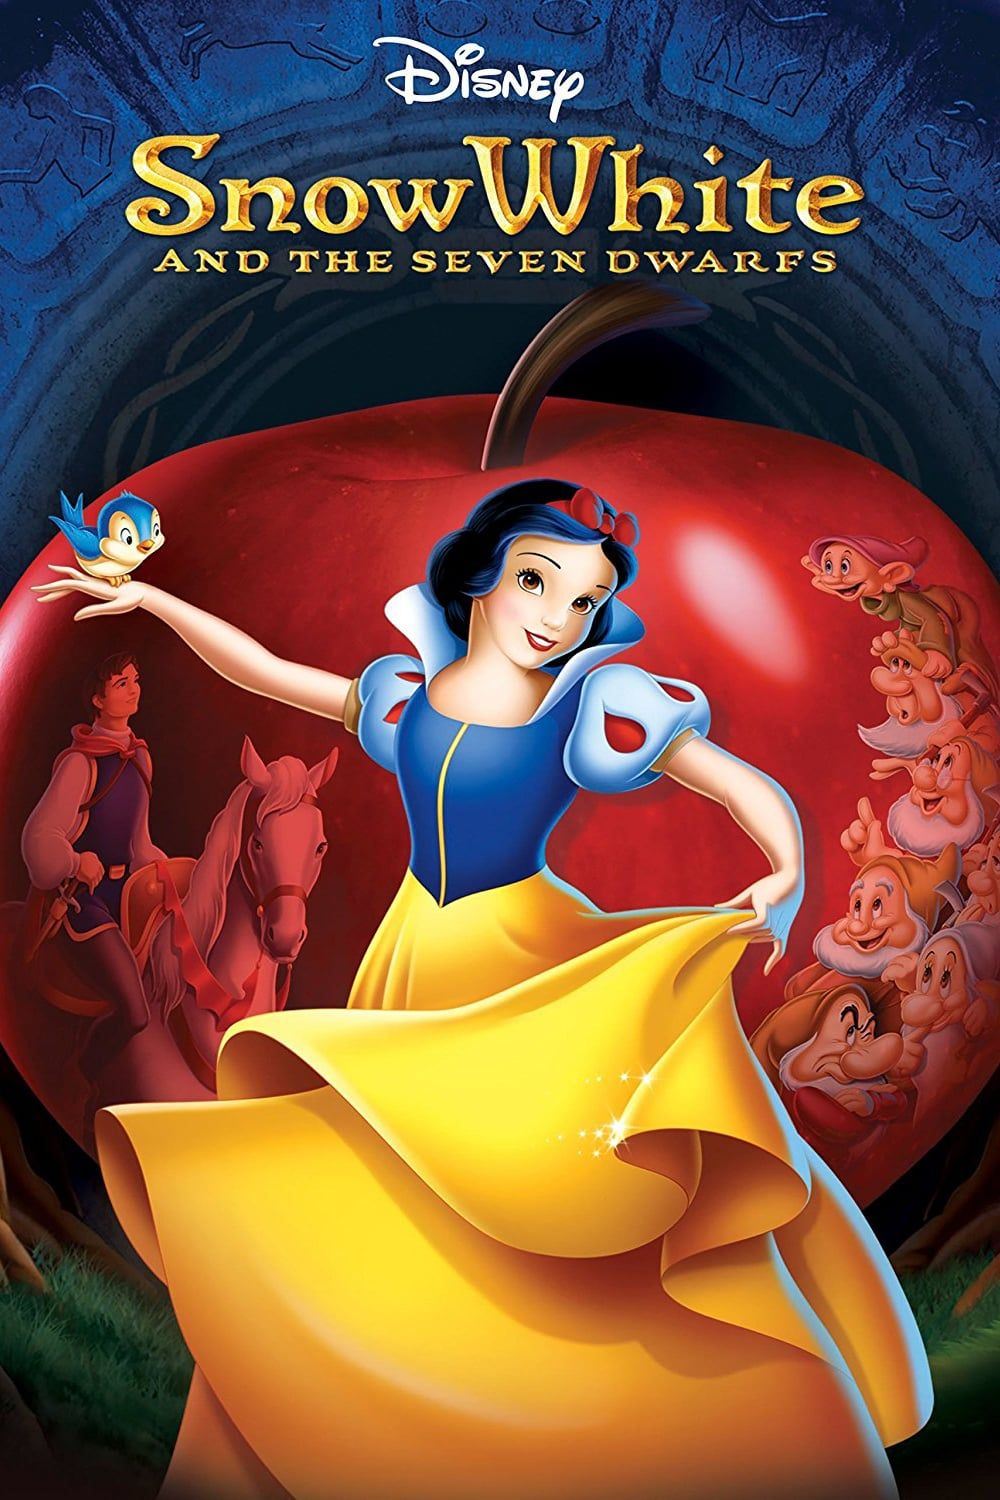 Watch Snow White And The Seven Dwarfs  Ef Bd 86 Ef Bd 95 Ef Bd 8c Ef Bd 8c  Ef Bd 8d Ef Bd 8f Ef Bd 96 Ef Bd 89 Ef Bd 85